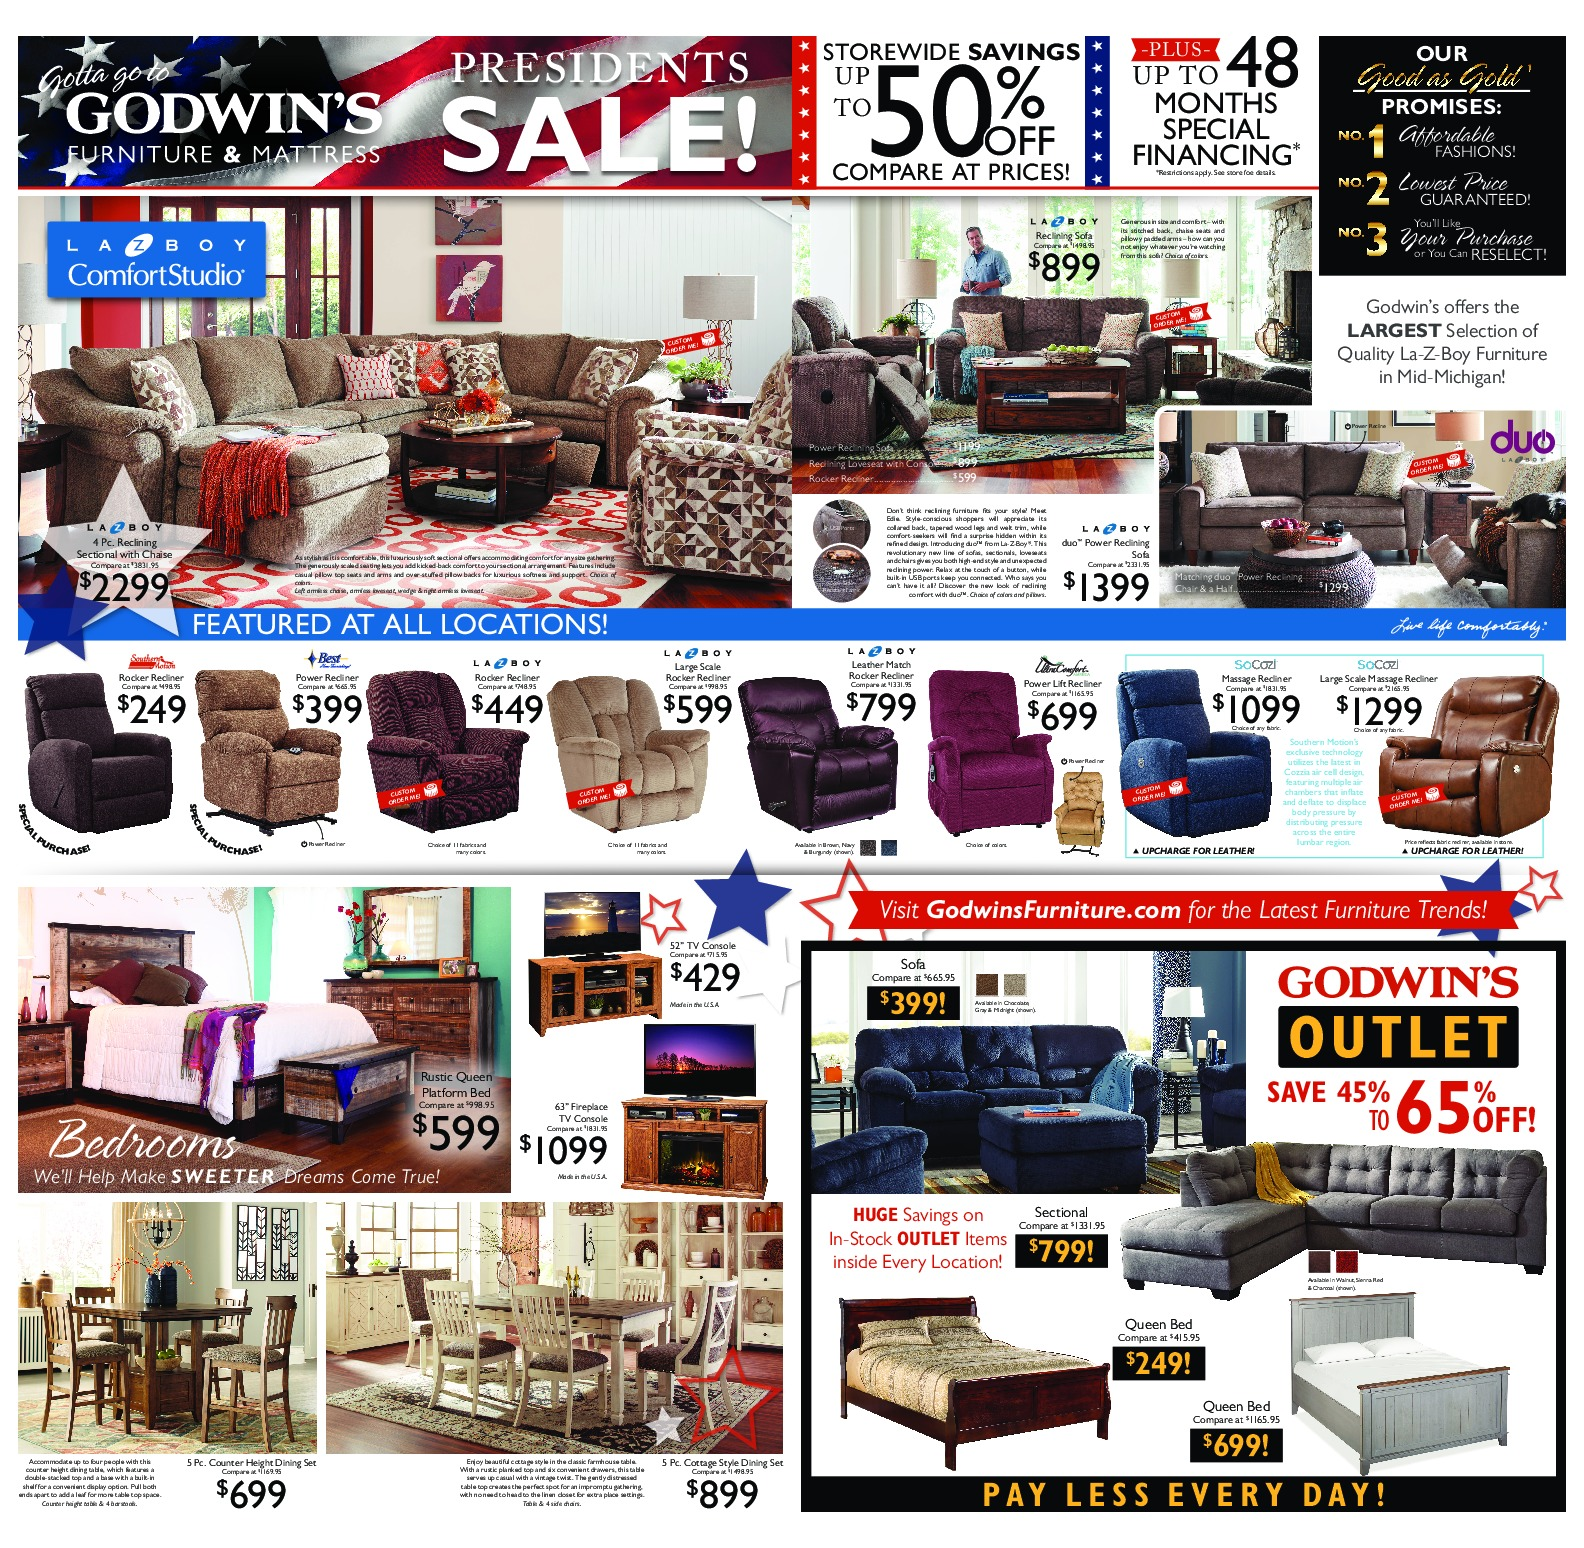 GOFU-9021-1913-Presidents-Specials Page-HR